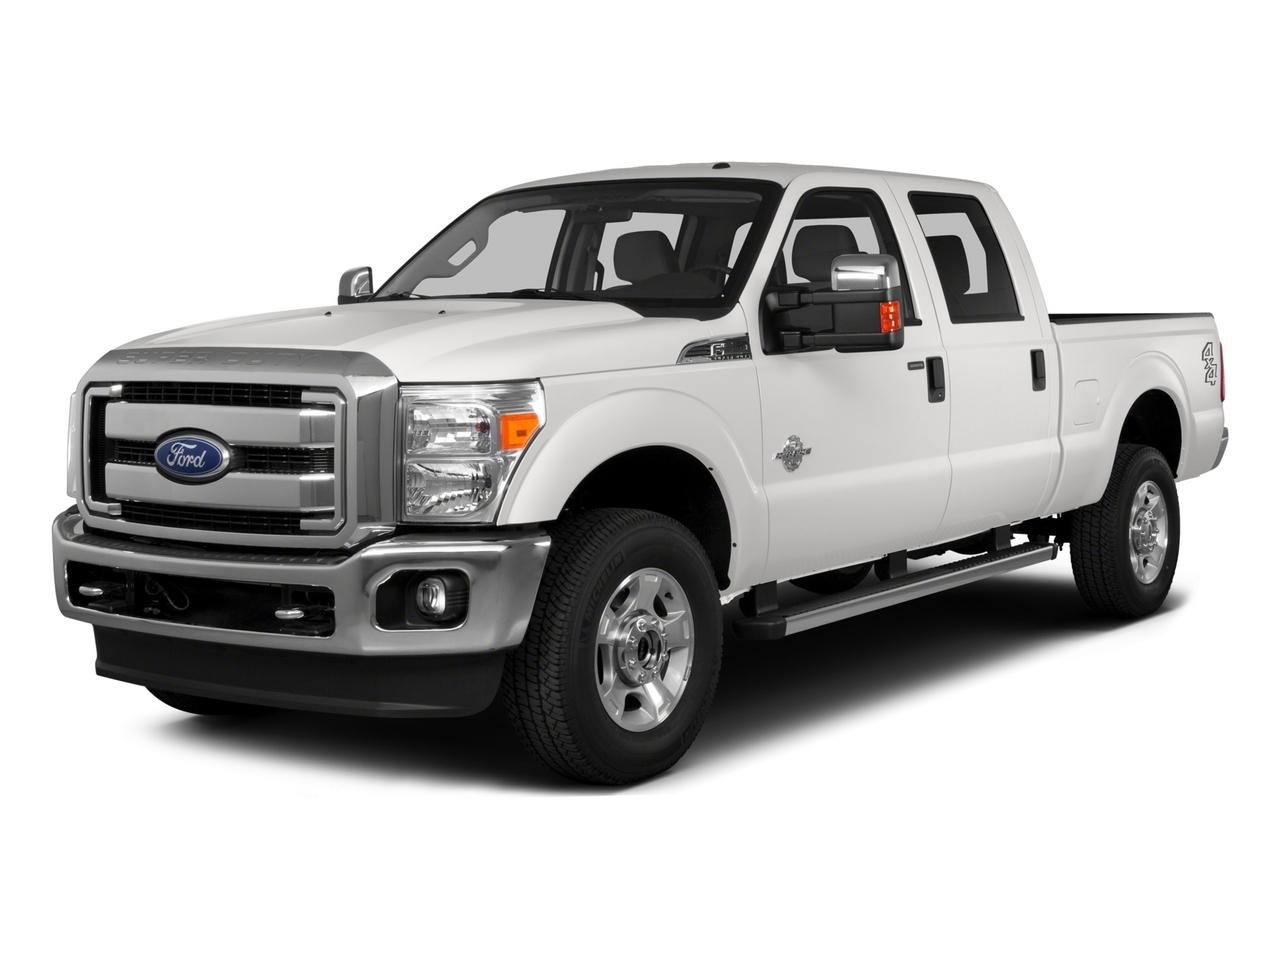 2015 Ford Super Duty F-350 SRW Vehicle Photo in Portland, OR 97225